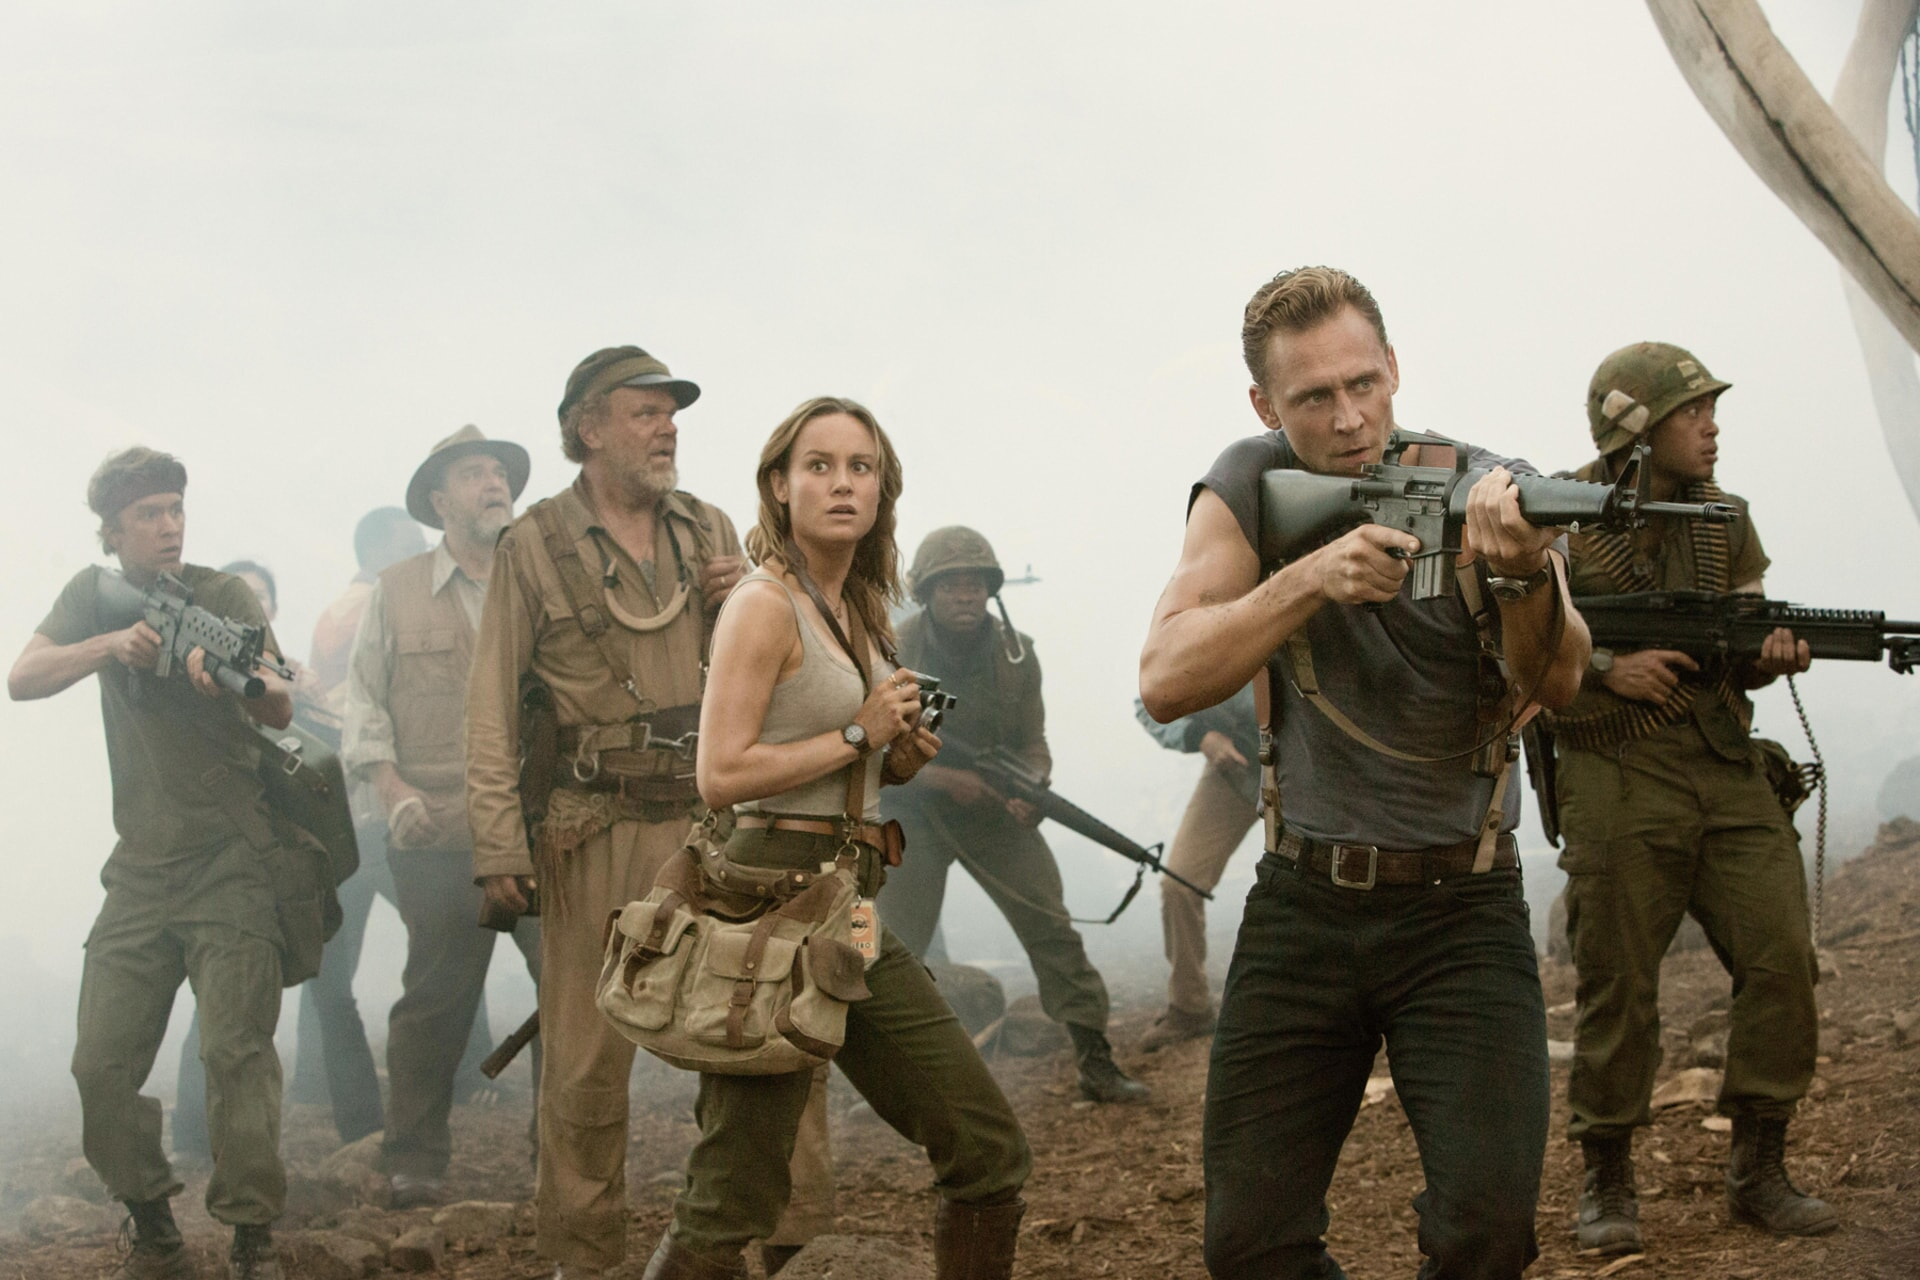 """THOMAS MANN as Slivko, JOHN GOODMAN as Bill Randa, JOHN C. REILLY as Hank Marlow, BRIE LARSON as Mason Weaver and TOM HIDDLESTON as James Conrad in Warner Bros. Pictures', Legendary Pictures' and Tencent Pictures' action adventure """"KONG: SKULL ISLAND,"""" a Warner Bros. Pictures release."""